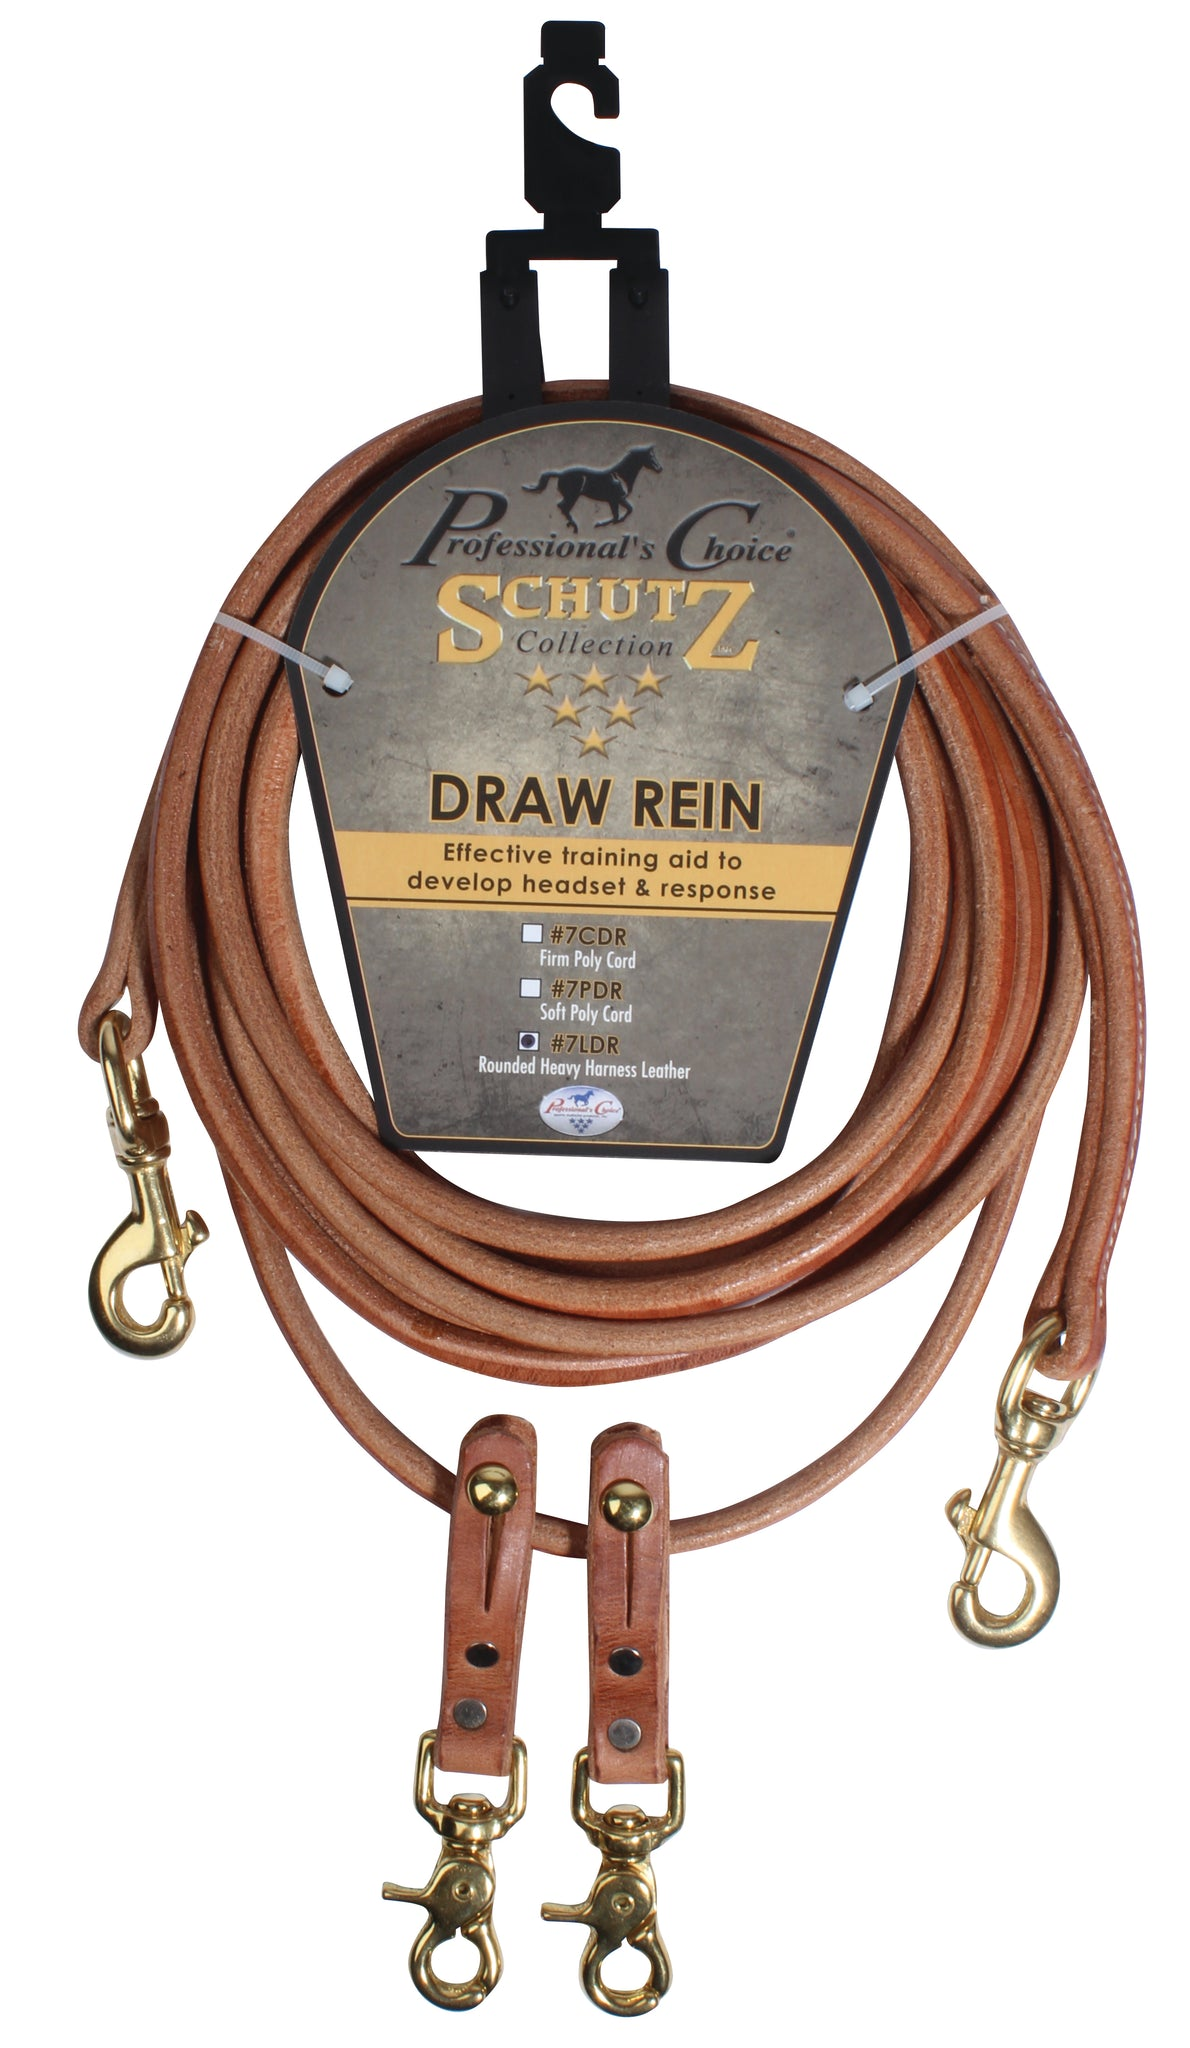 Schutz Bros Professionals Choice Rounded Draw Reins